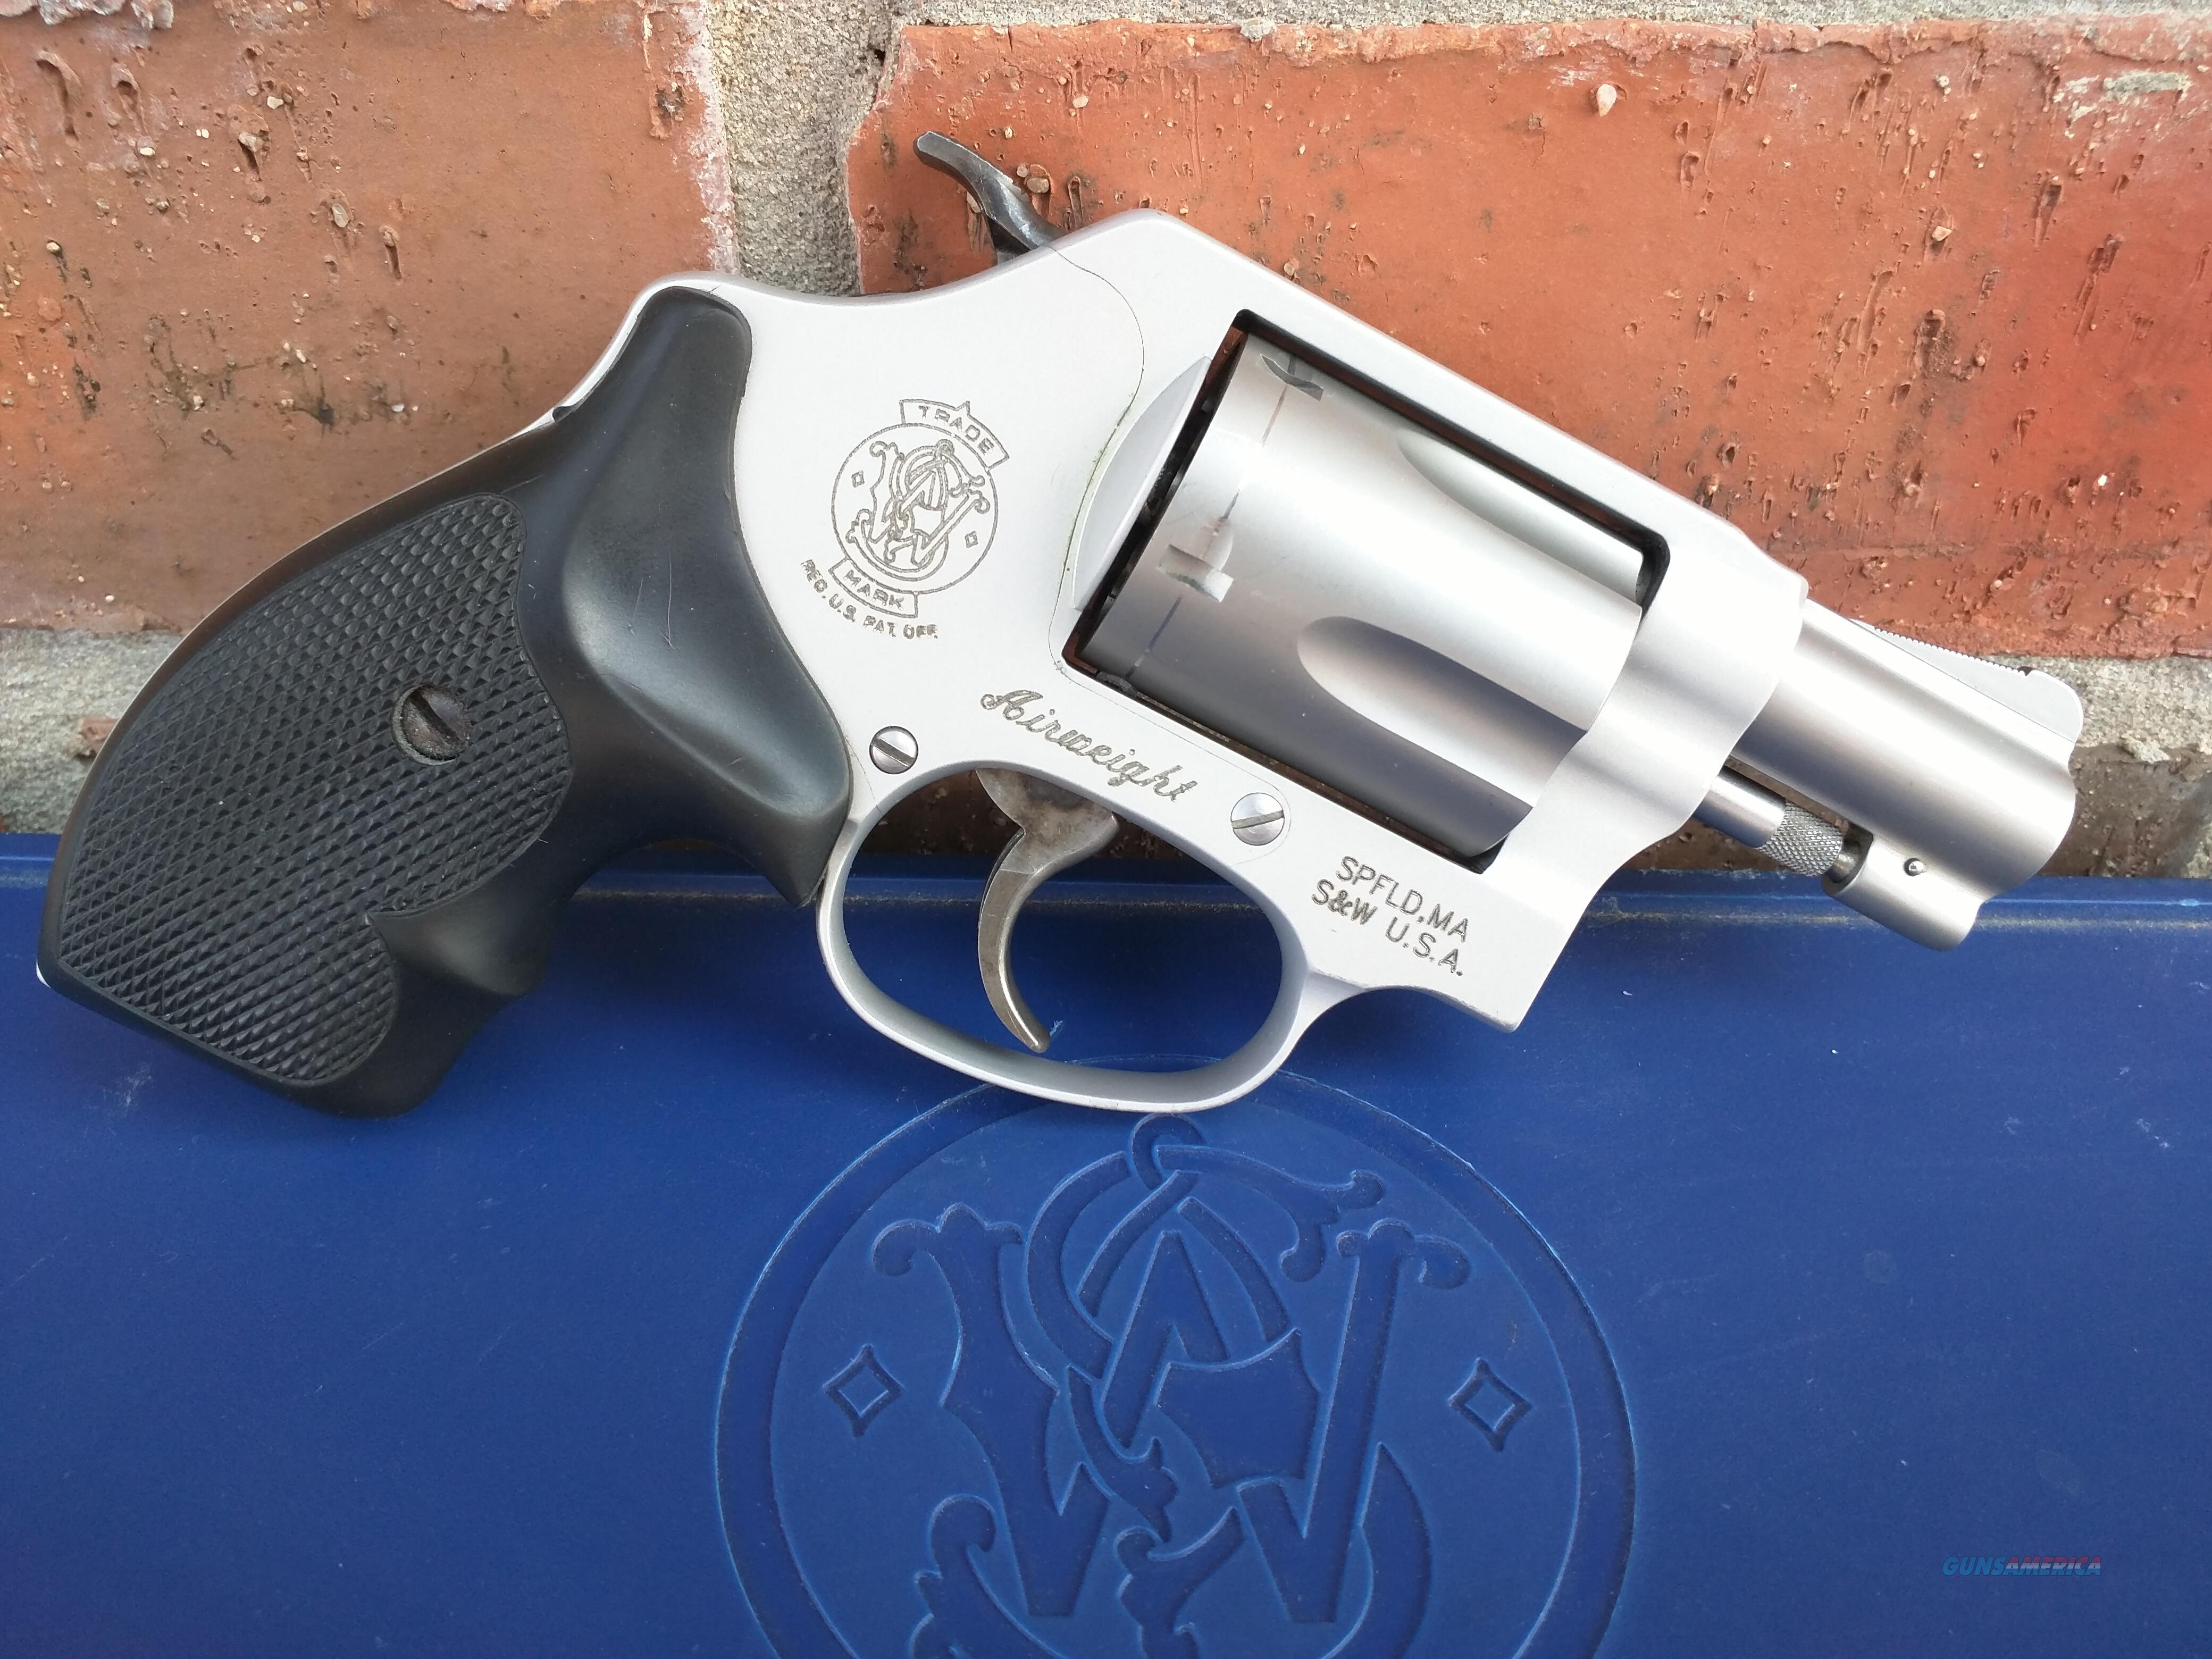 "Smith & Wesson S&W 637 Airweight .38 Special 1 7/8 "" snubnose, like new, great concealed carry.  FREE LAYAWAY  Guns > Pistols > Smith & Wesson Revolvers > Pocket Pistols"